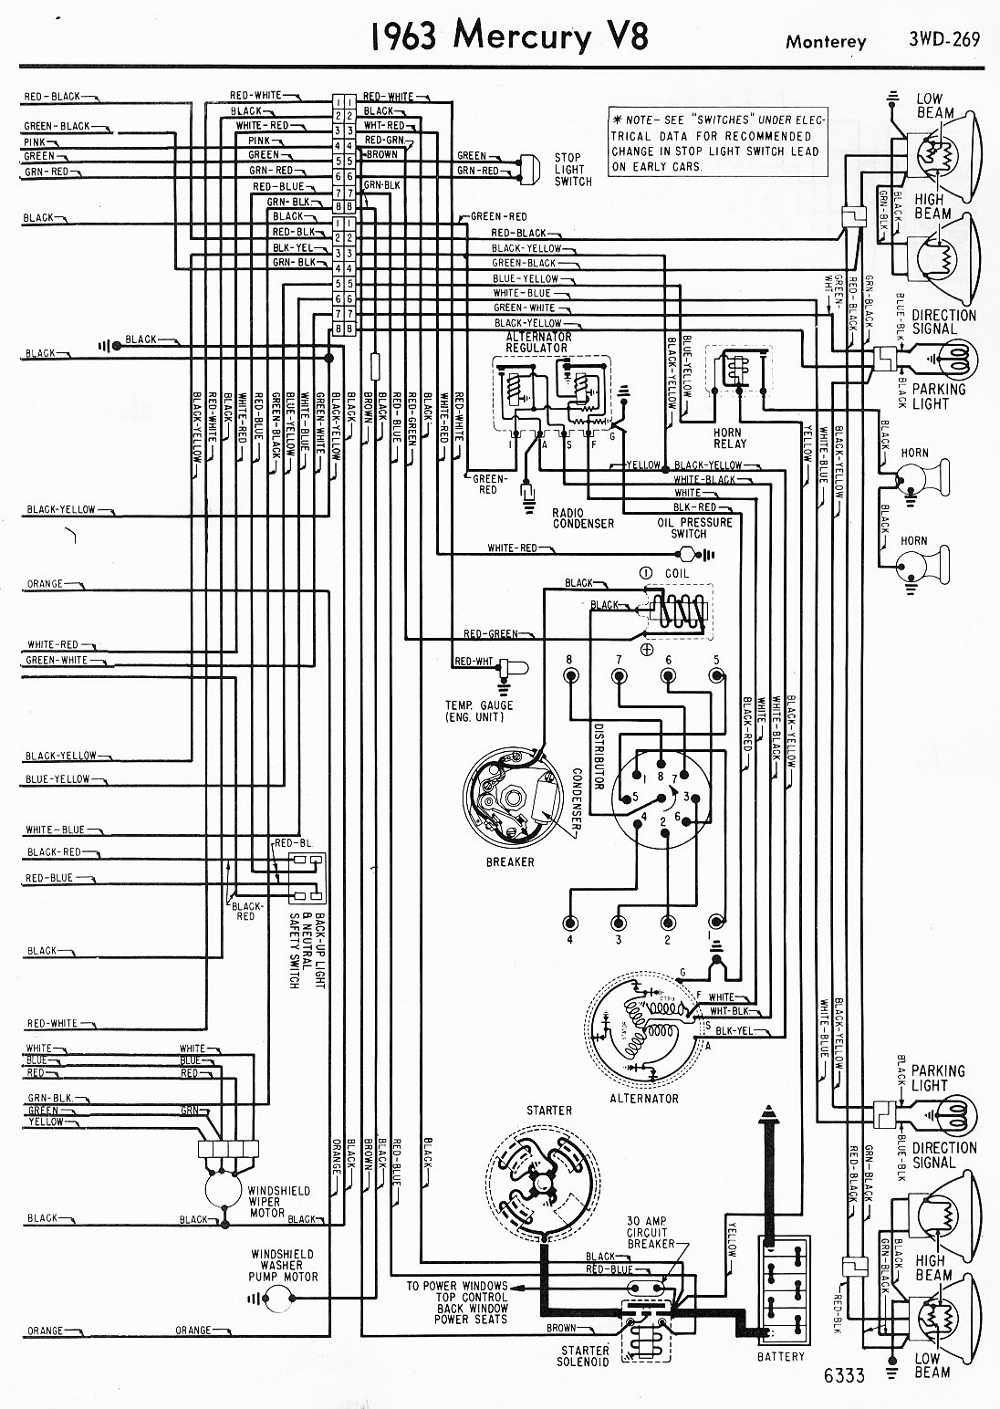 [DVZP_7254]   F25871E 1966 Mustang Neutral Safety Switch Wiring Diagram | Wiring Resources | 1966 Mustang Wiring Diagram Tachometer |  | Wiring Resources